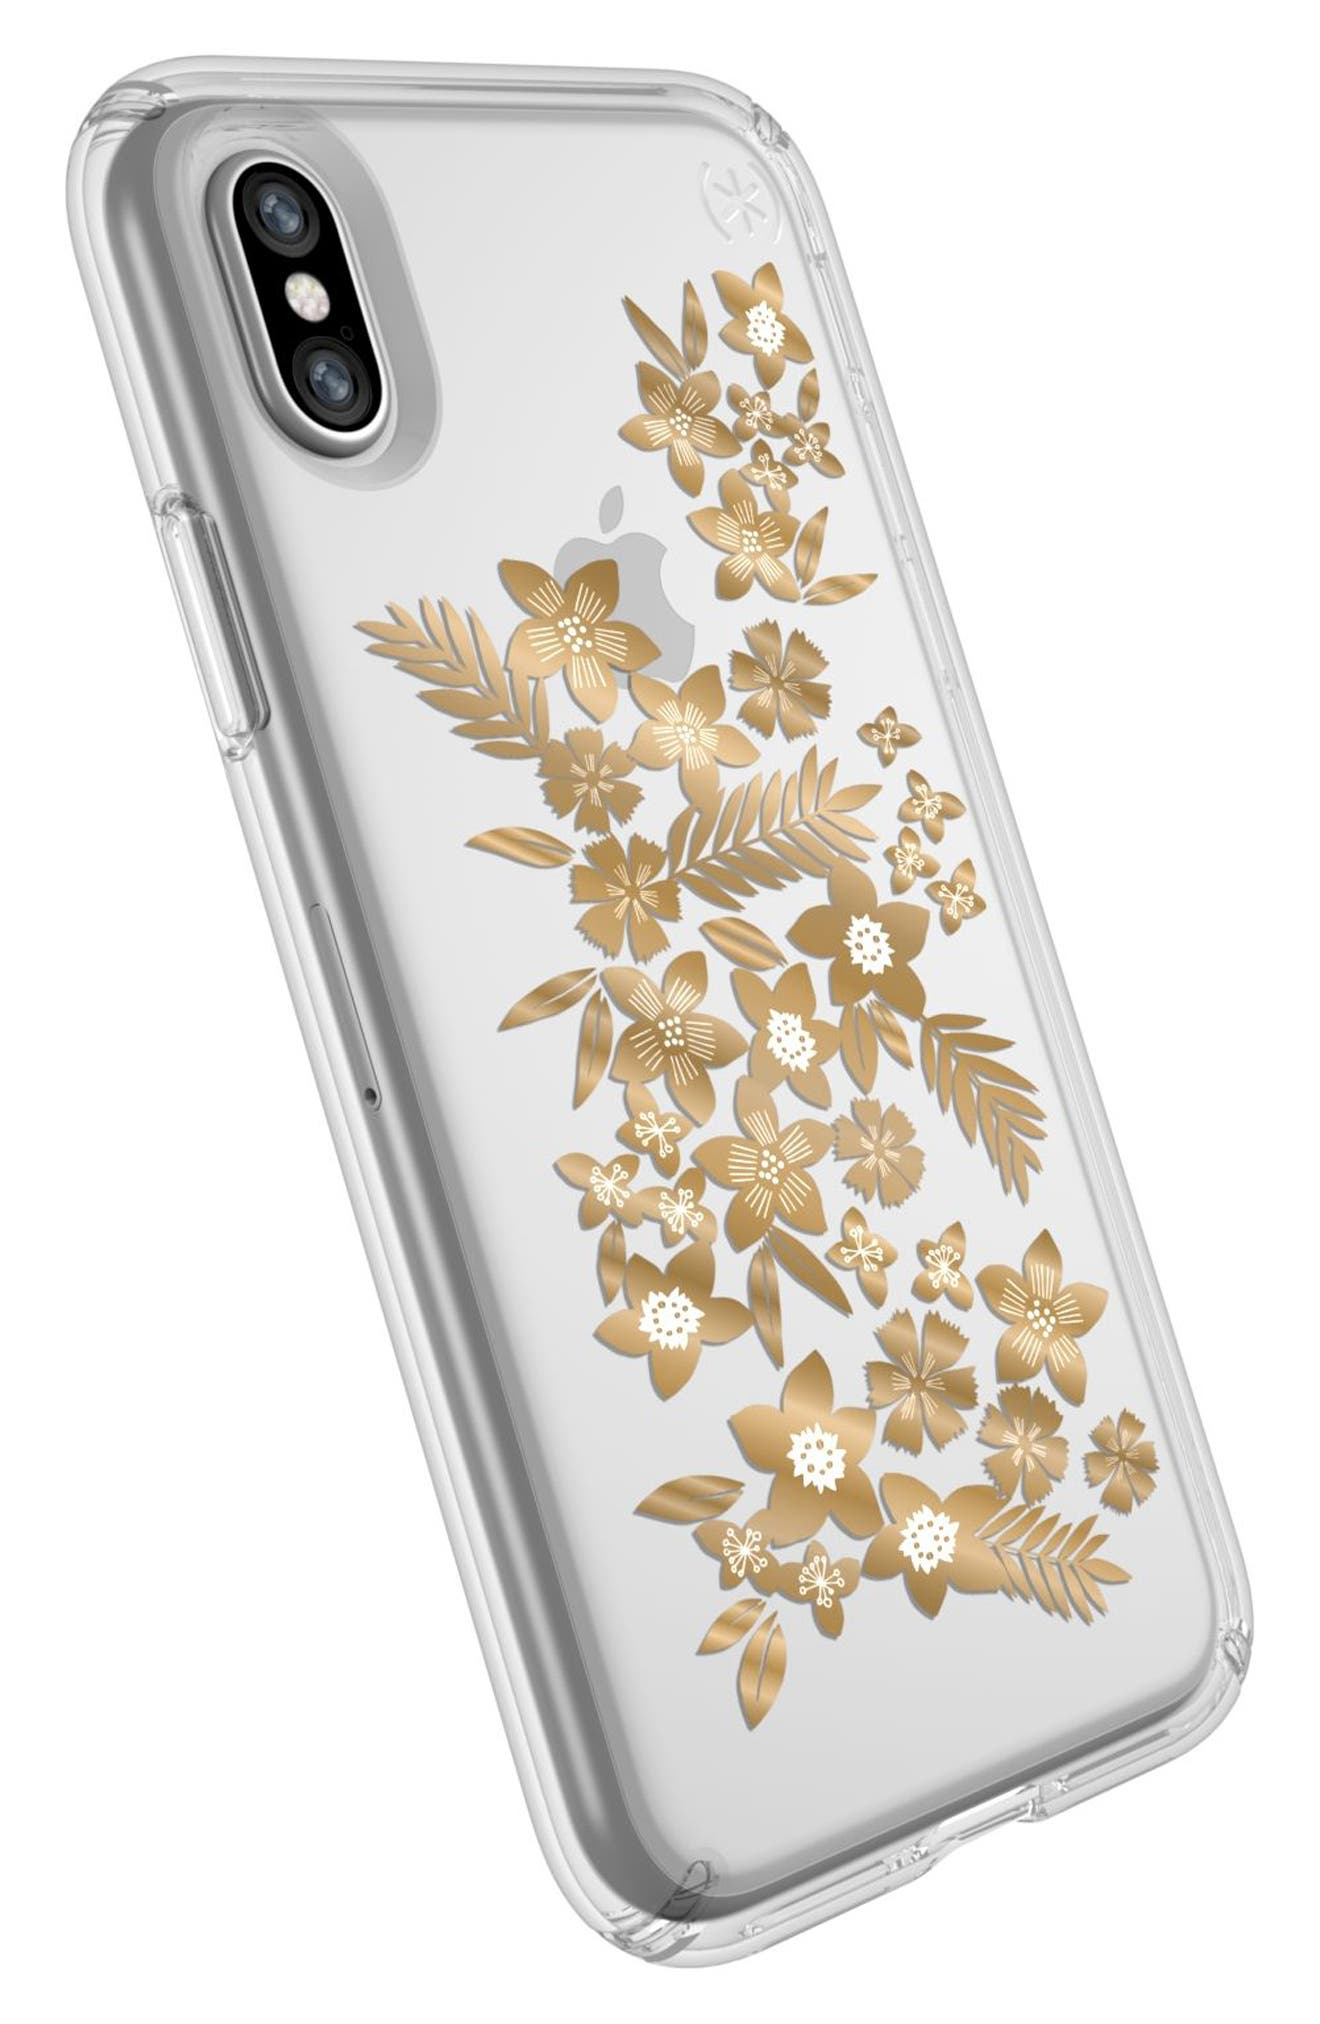 Shimmer Metallic Floral Transparent iPhone X & Xs Case,                             Alternate thumbnail 8, color,                             SHIMMER FLORAL METALLIC/ CLEAR